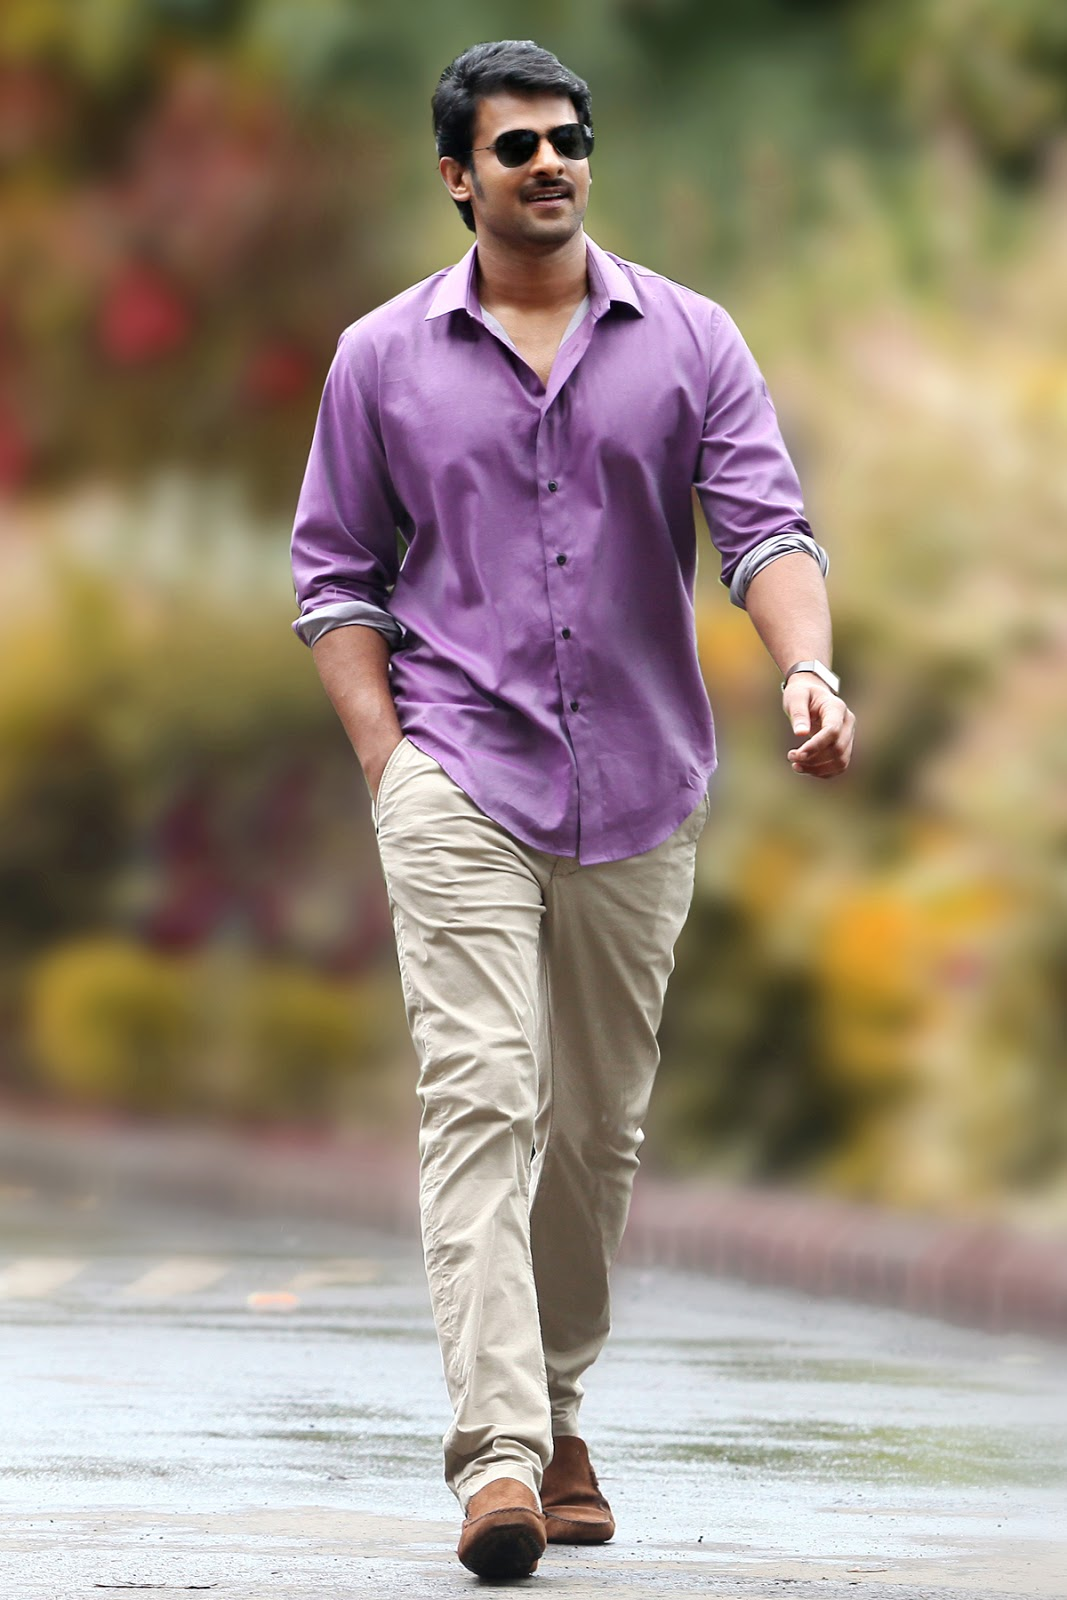 prabhas latest hd wallpapers hd wallpapers high definition